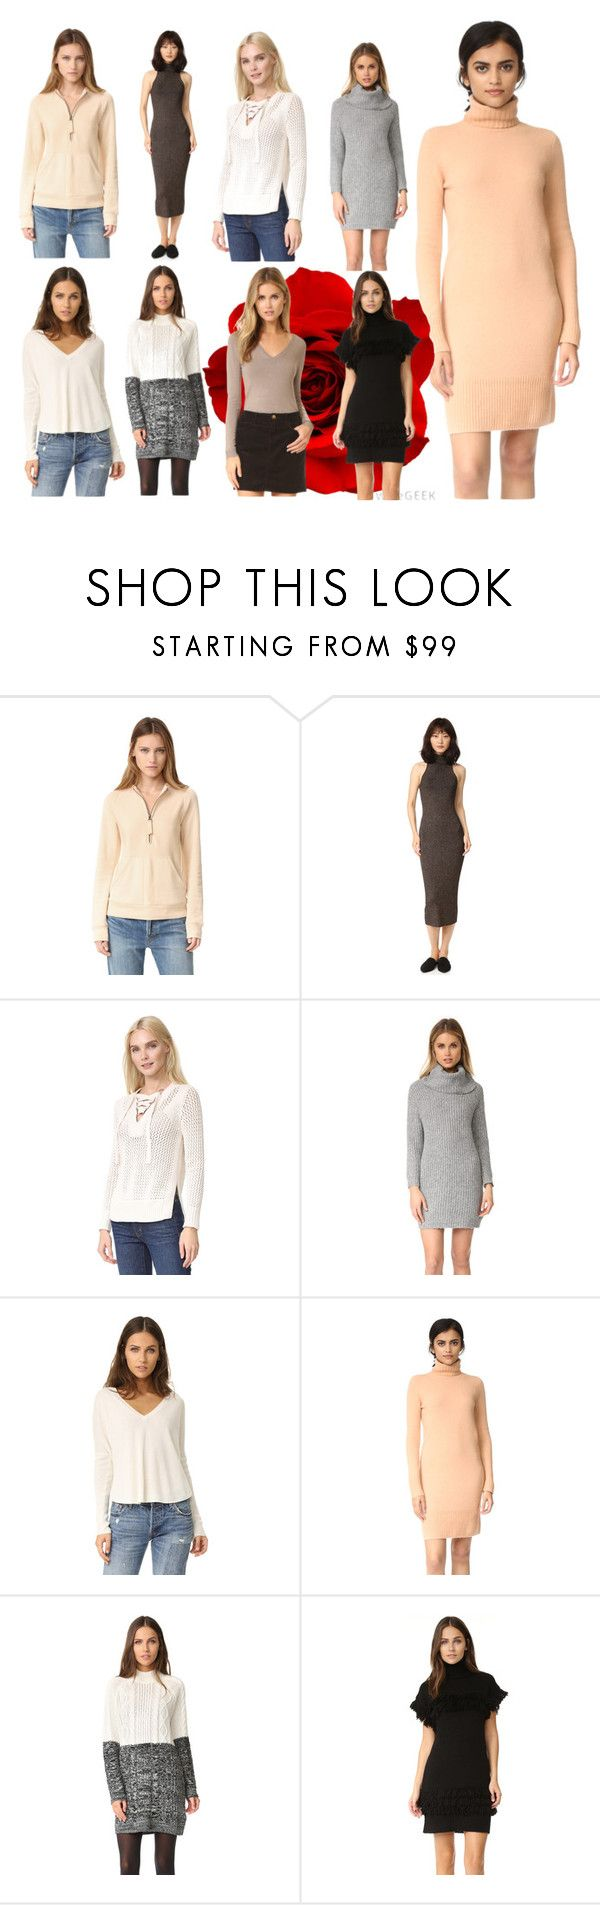 """""""tops great collection"""" by monica022 ❤ liked on Polyvore featuring Helmut Lang, A.L.C., 10 Crosby Derek Lam, cupcakes and cashmere, Alice + Olivia, Club Monaco, MINKPINK, Rachel Zoe, 525 America and vintage"""